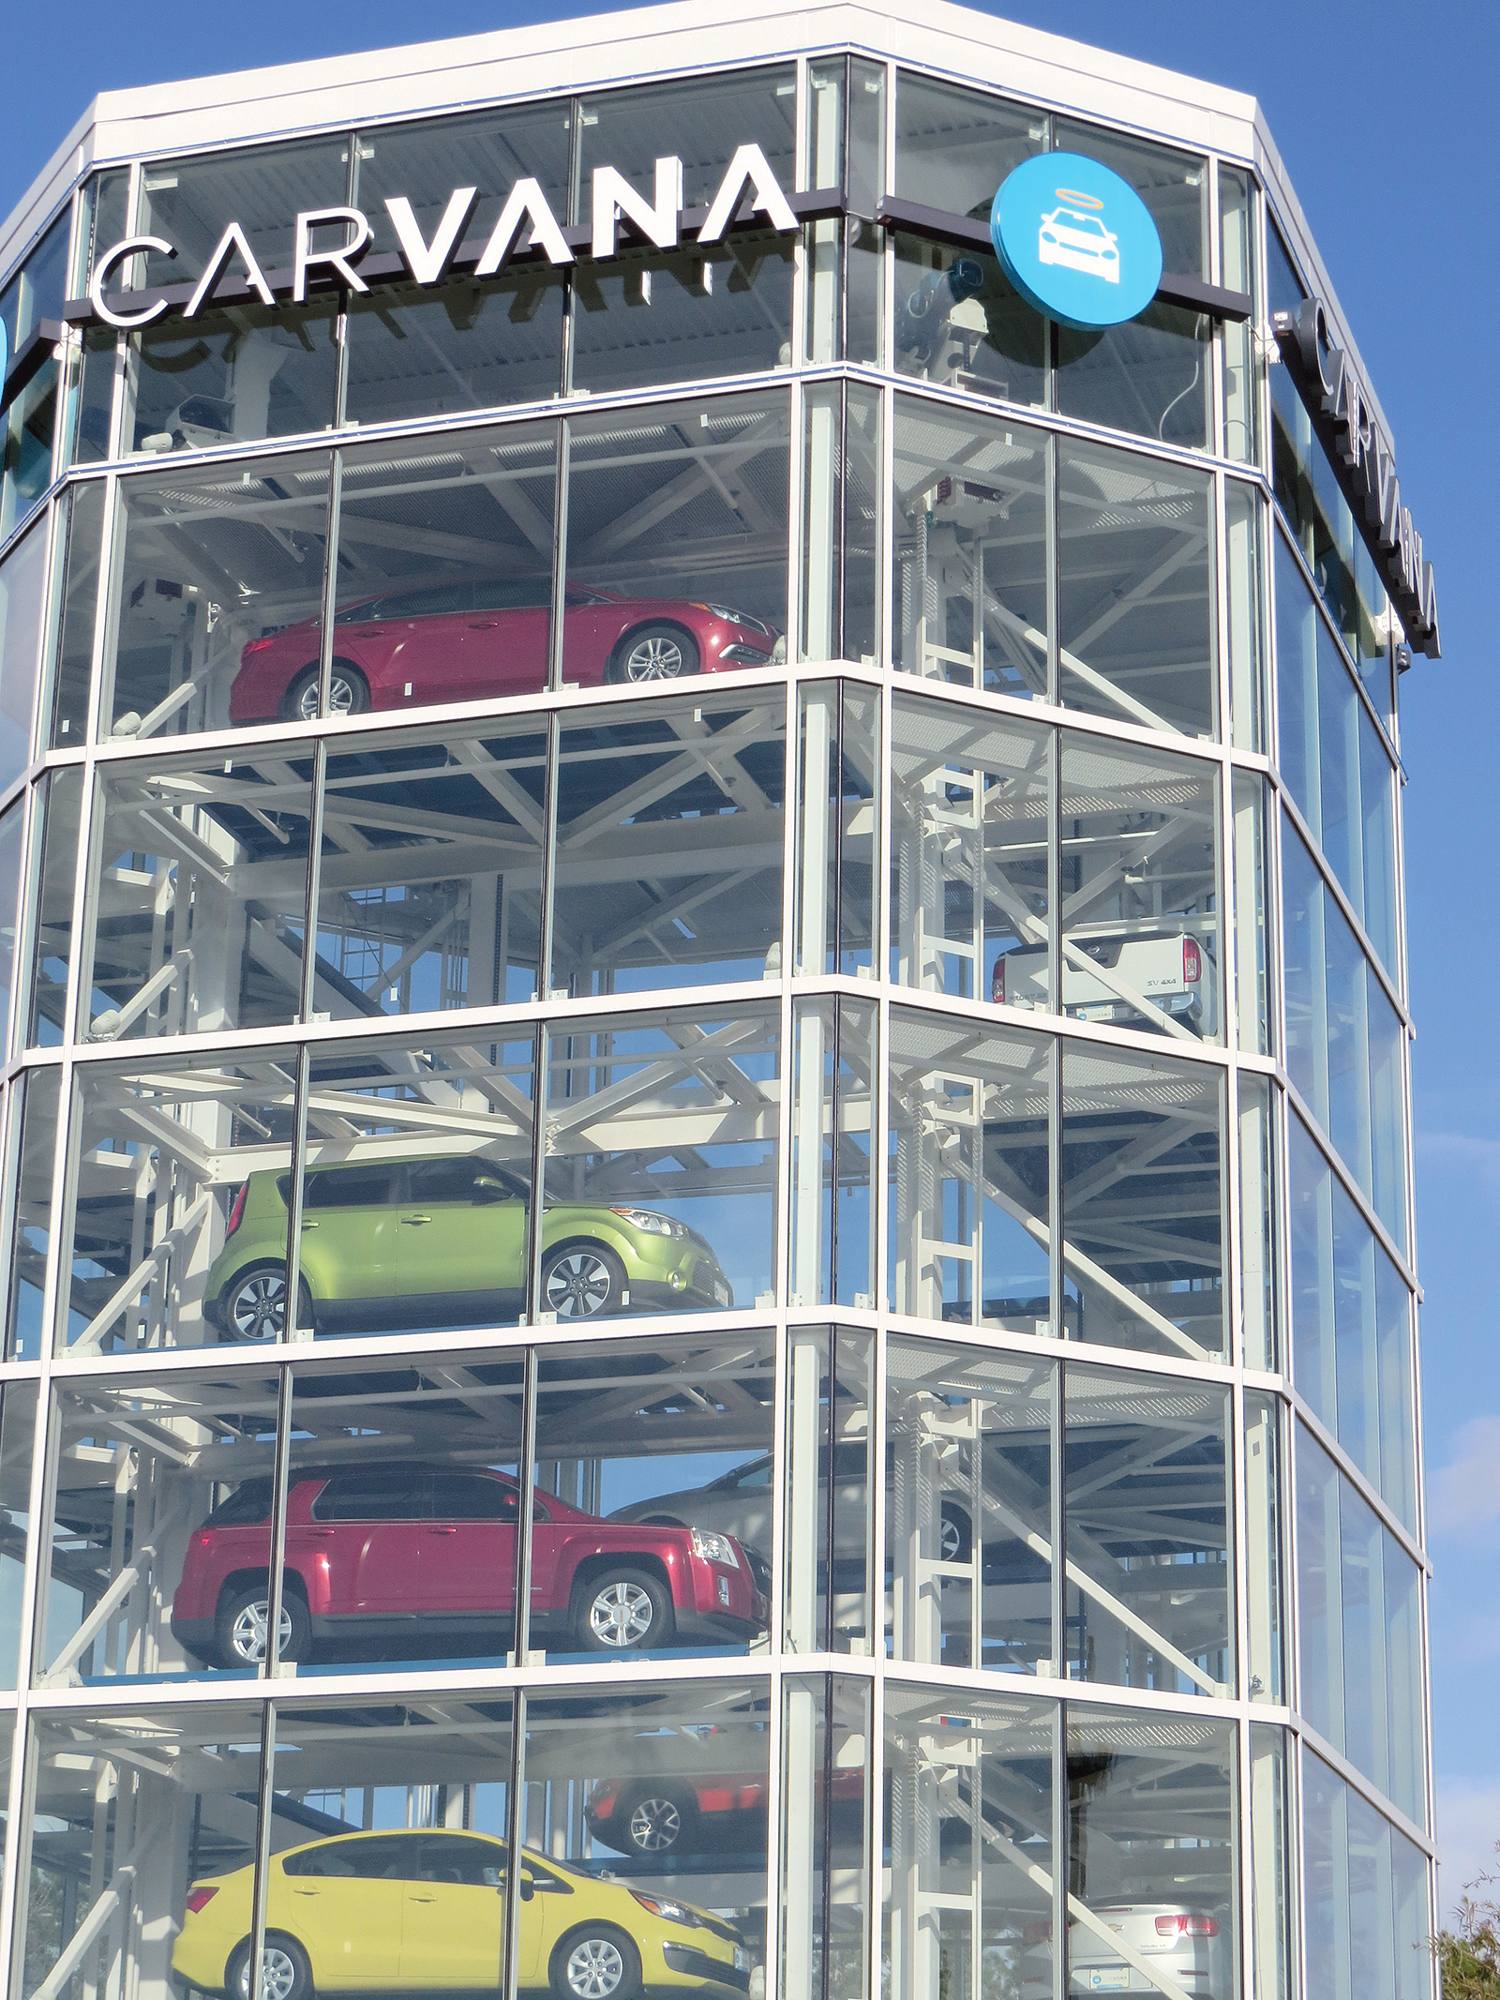 Used Cars Jacksonville >> Carvana tower ready to begin dispensing | Jax Daily Record | Financial News & Daily Record ...